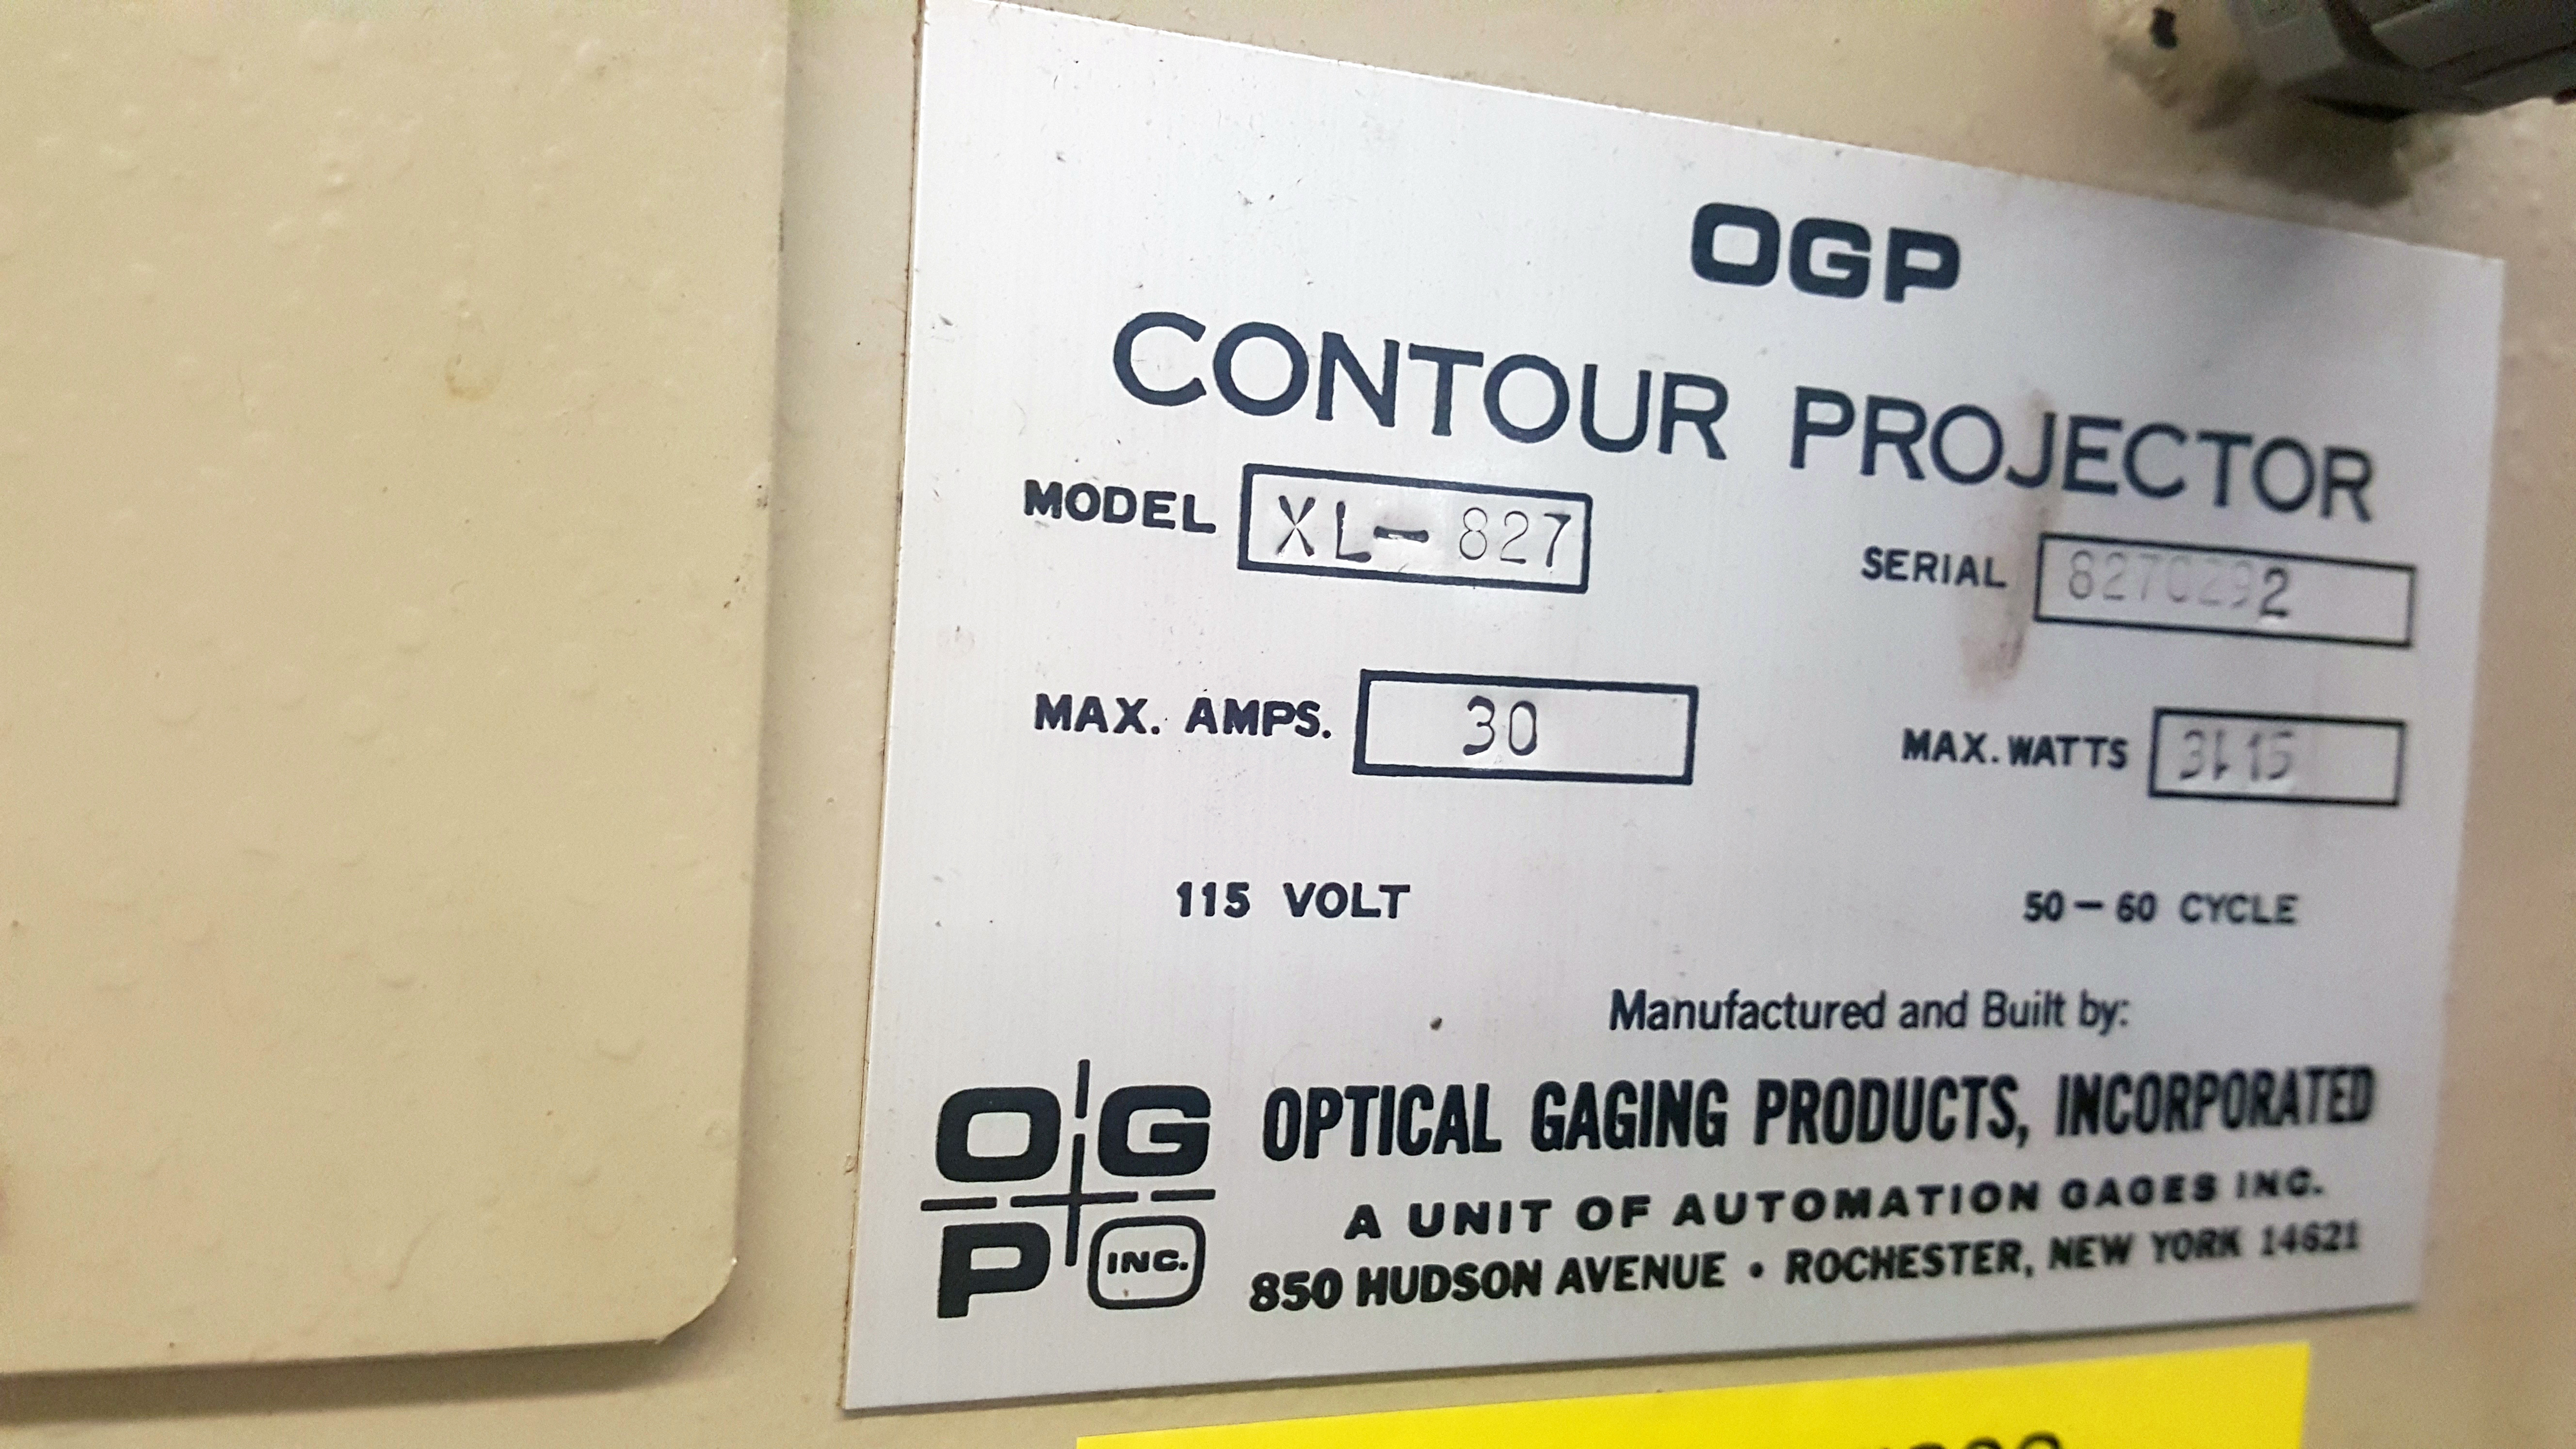 """OGP 30"""" Optical Comparator Projector, Model IXL-827, XL30S, S/N 8270292, under power - Image 7 of 8"""